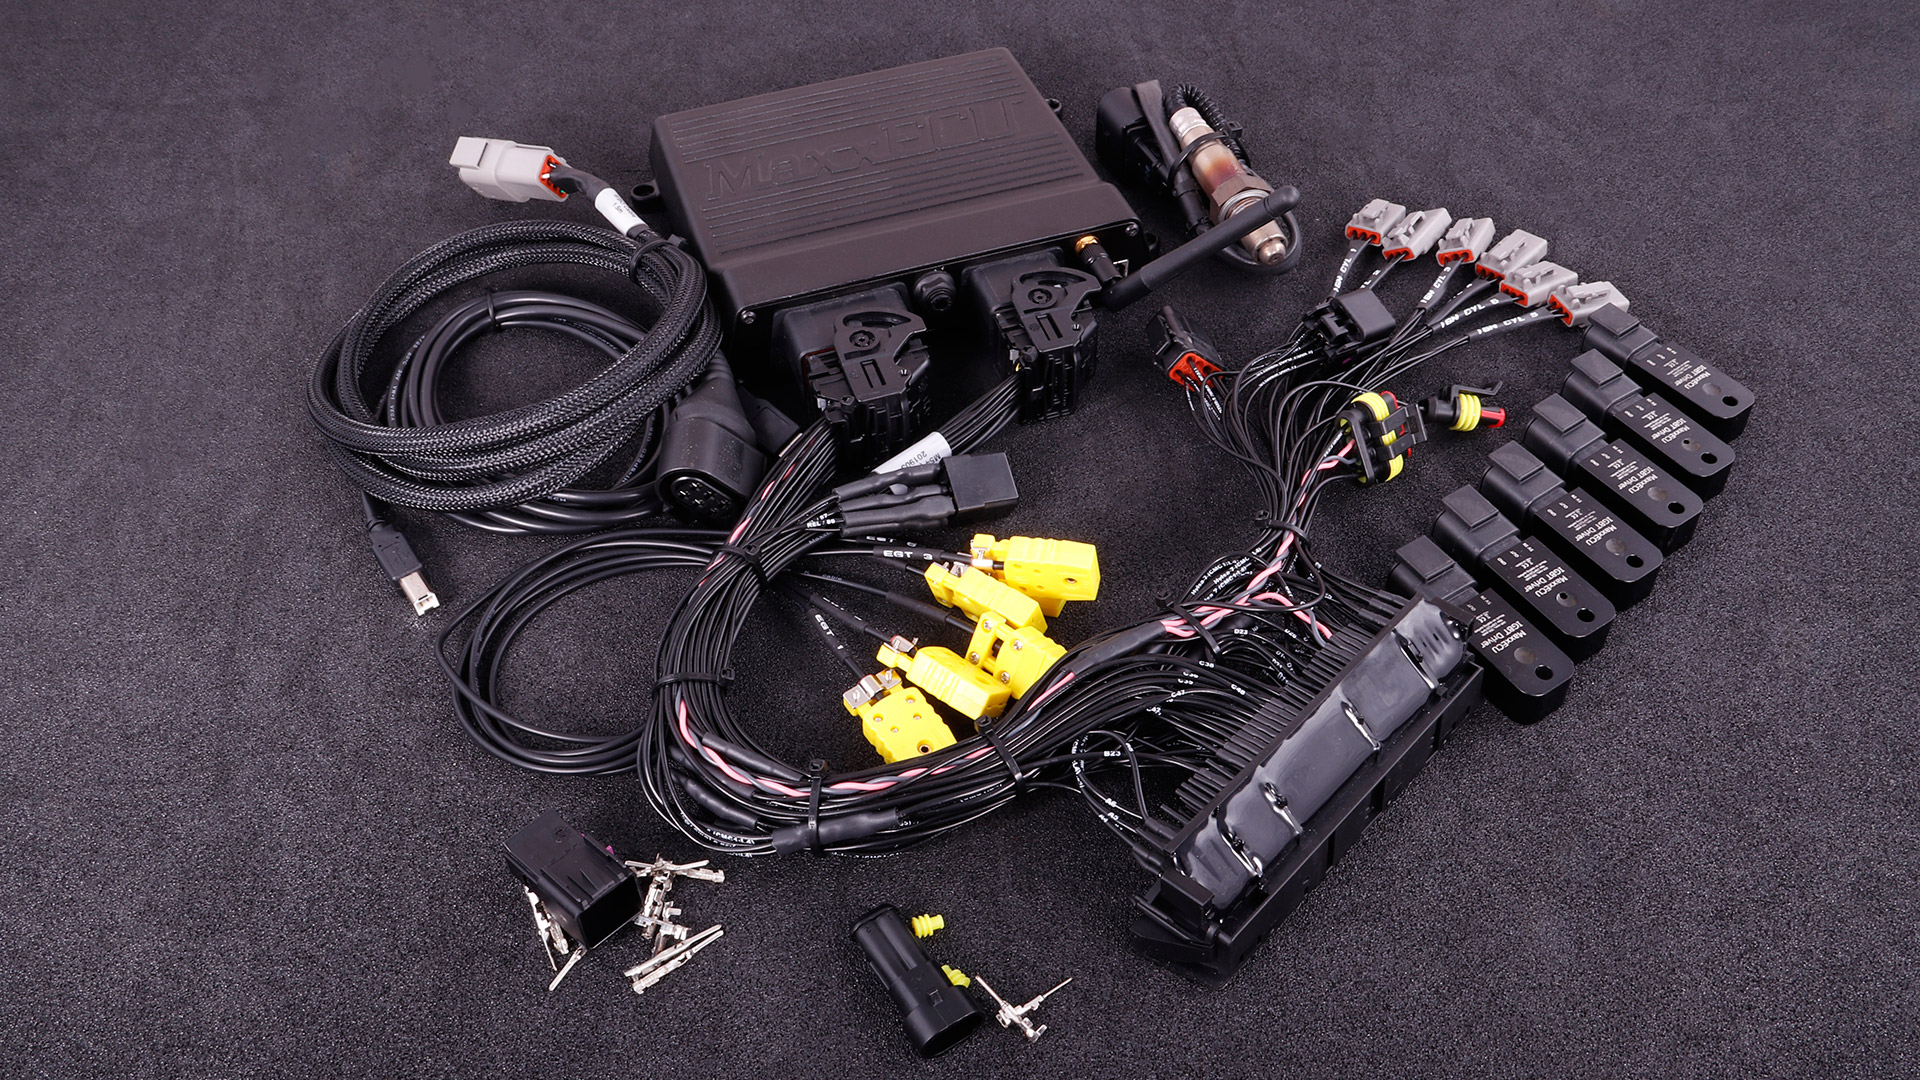 small resolution of maxxecu race plugin for bmw m54 complete kit with bosch lsu 4 2 sensor igbt drivers